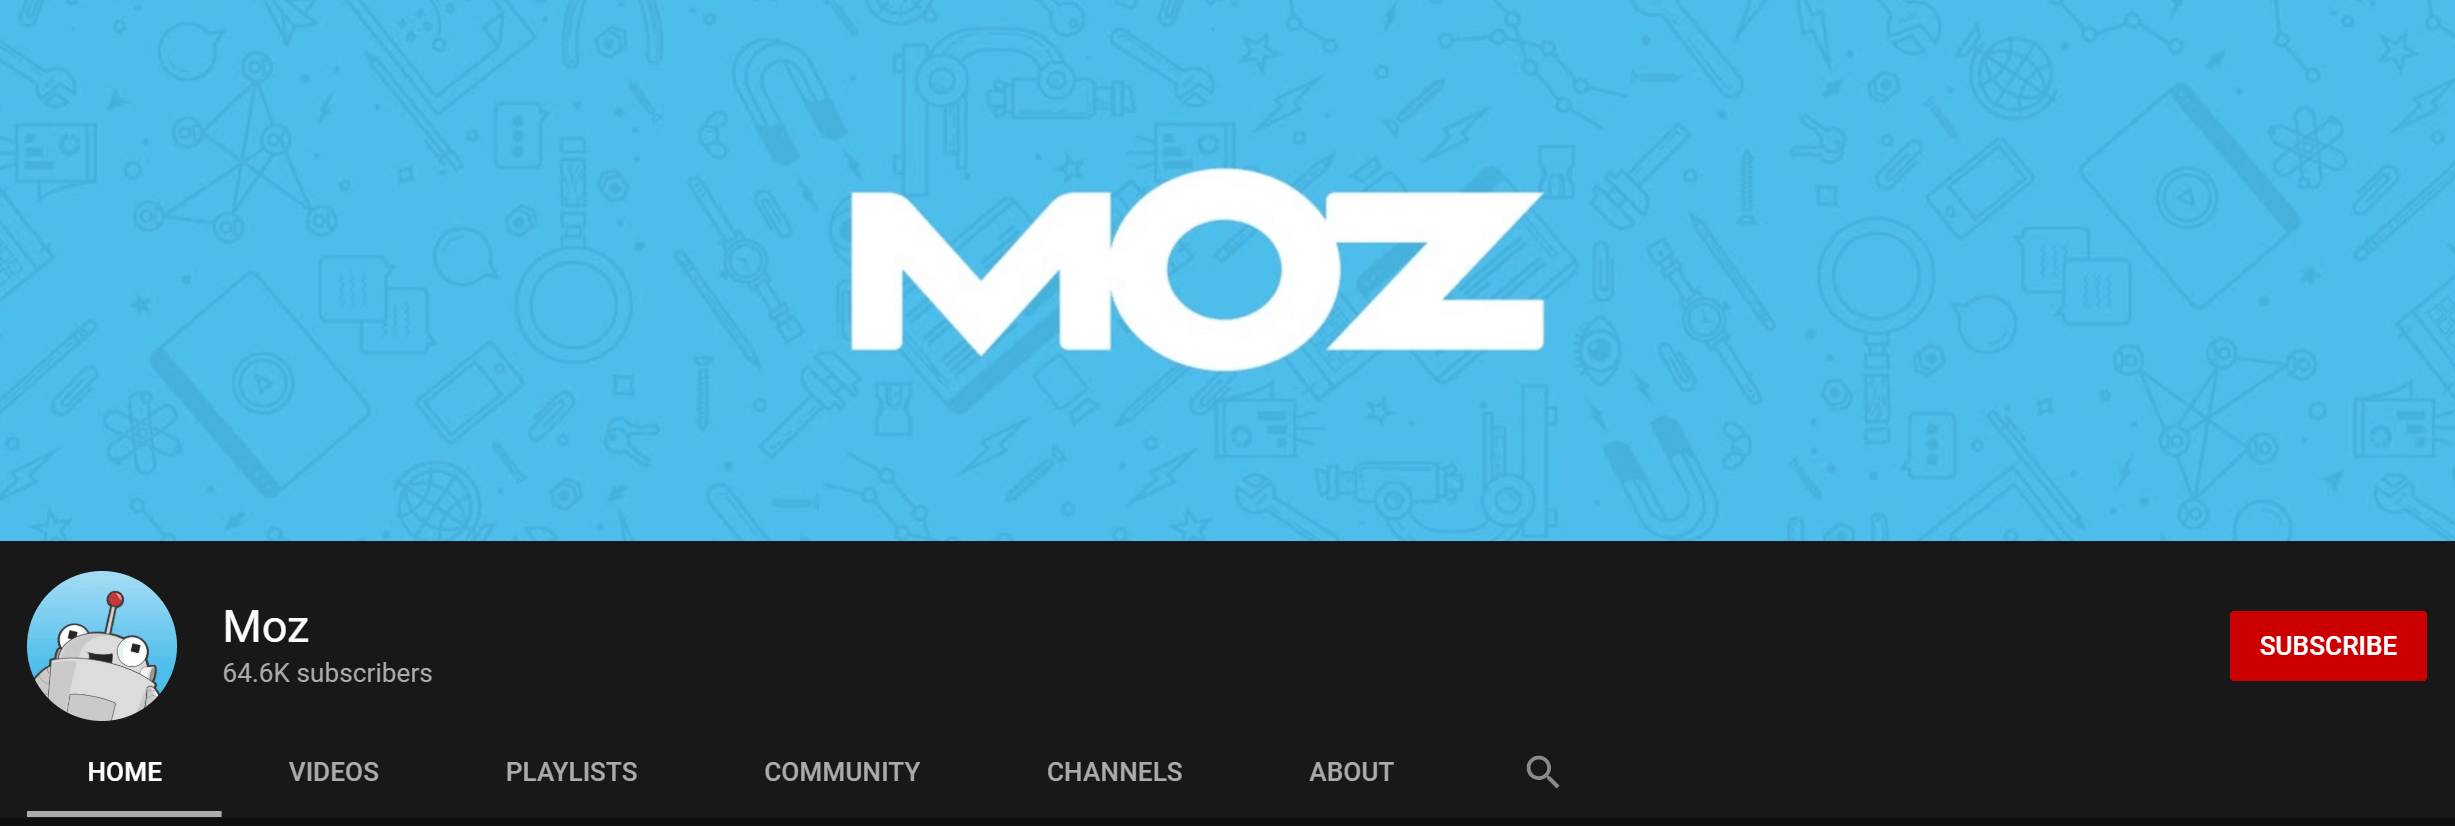 Moz Youtube Channel